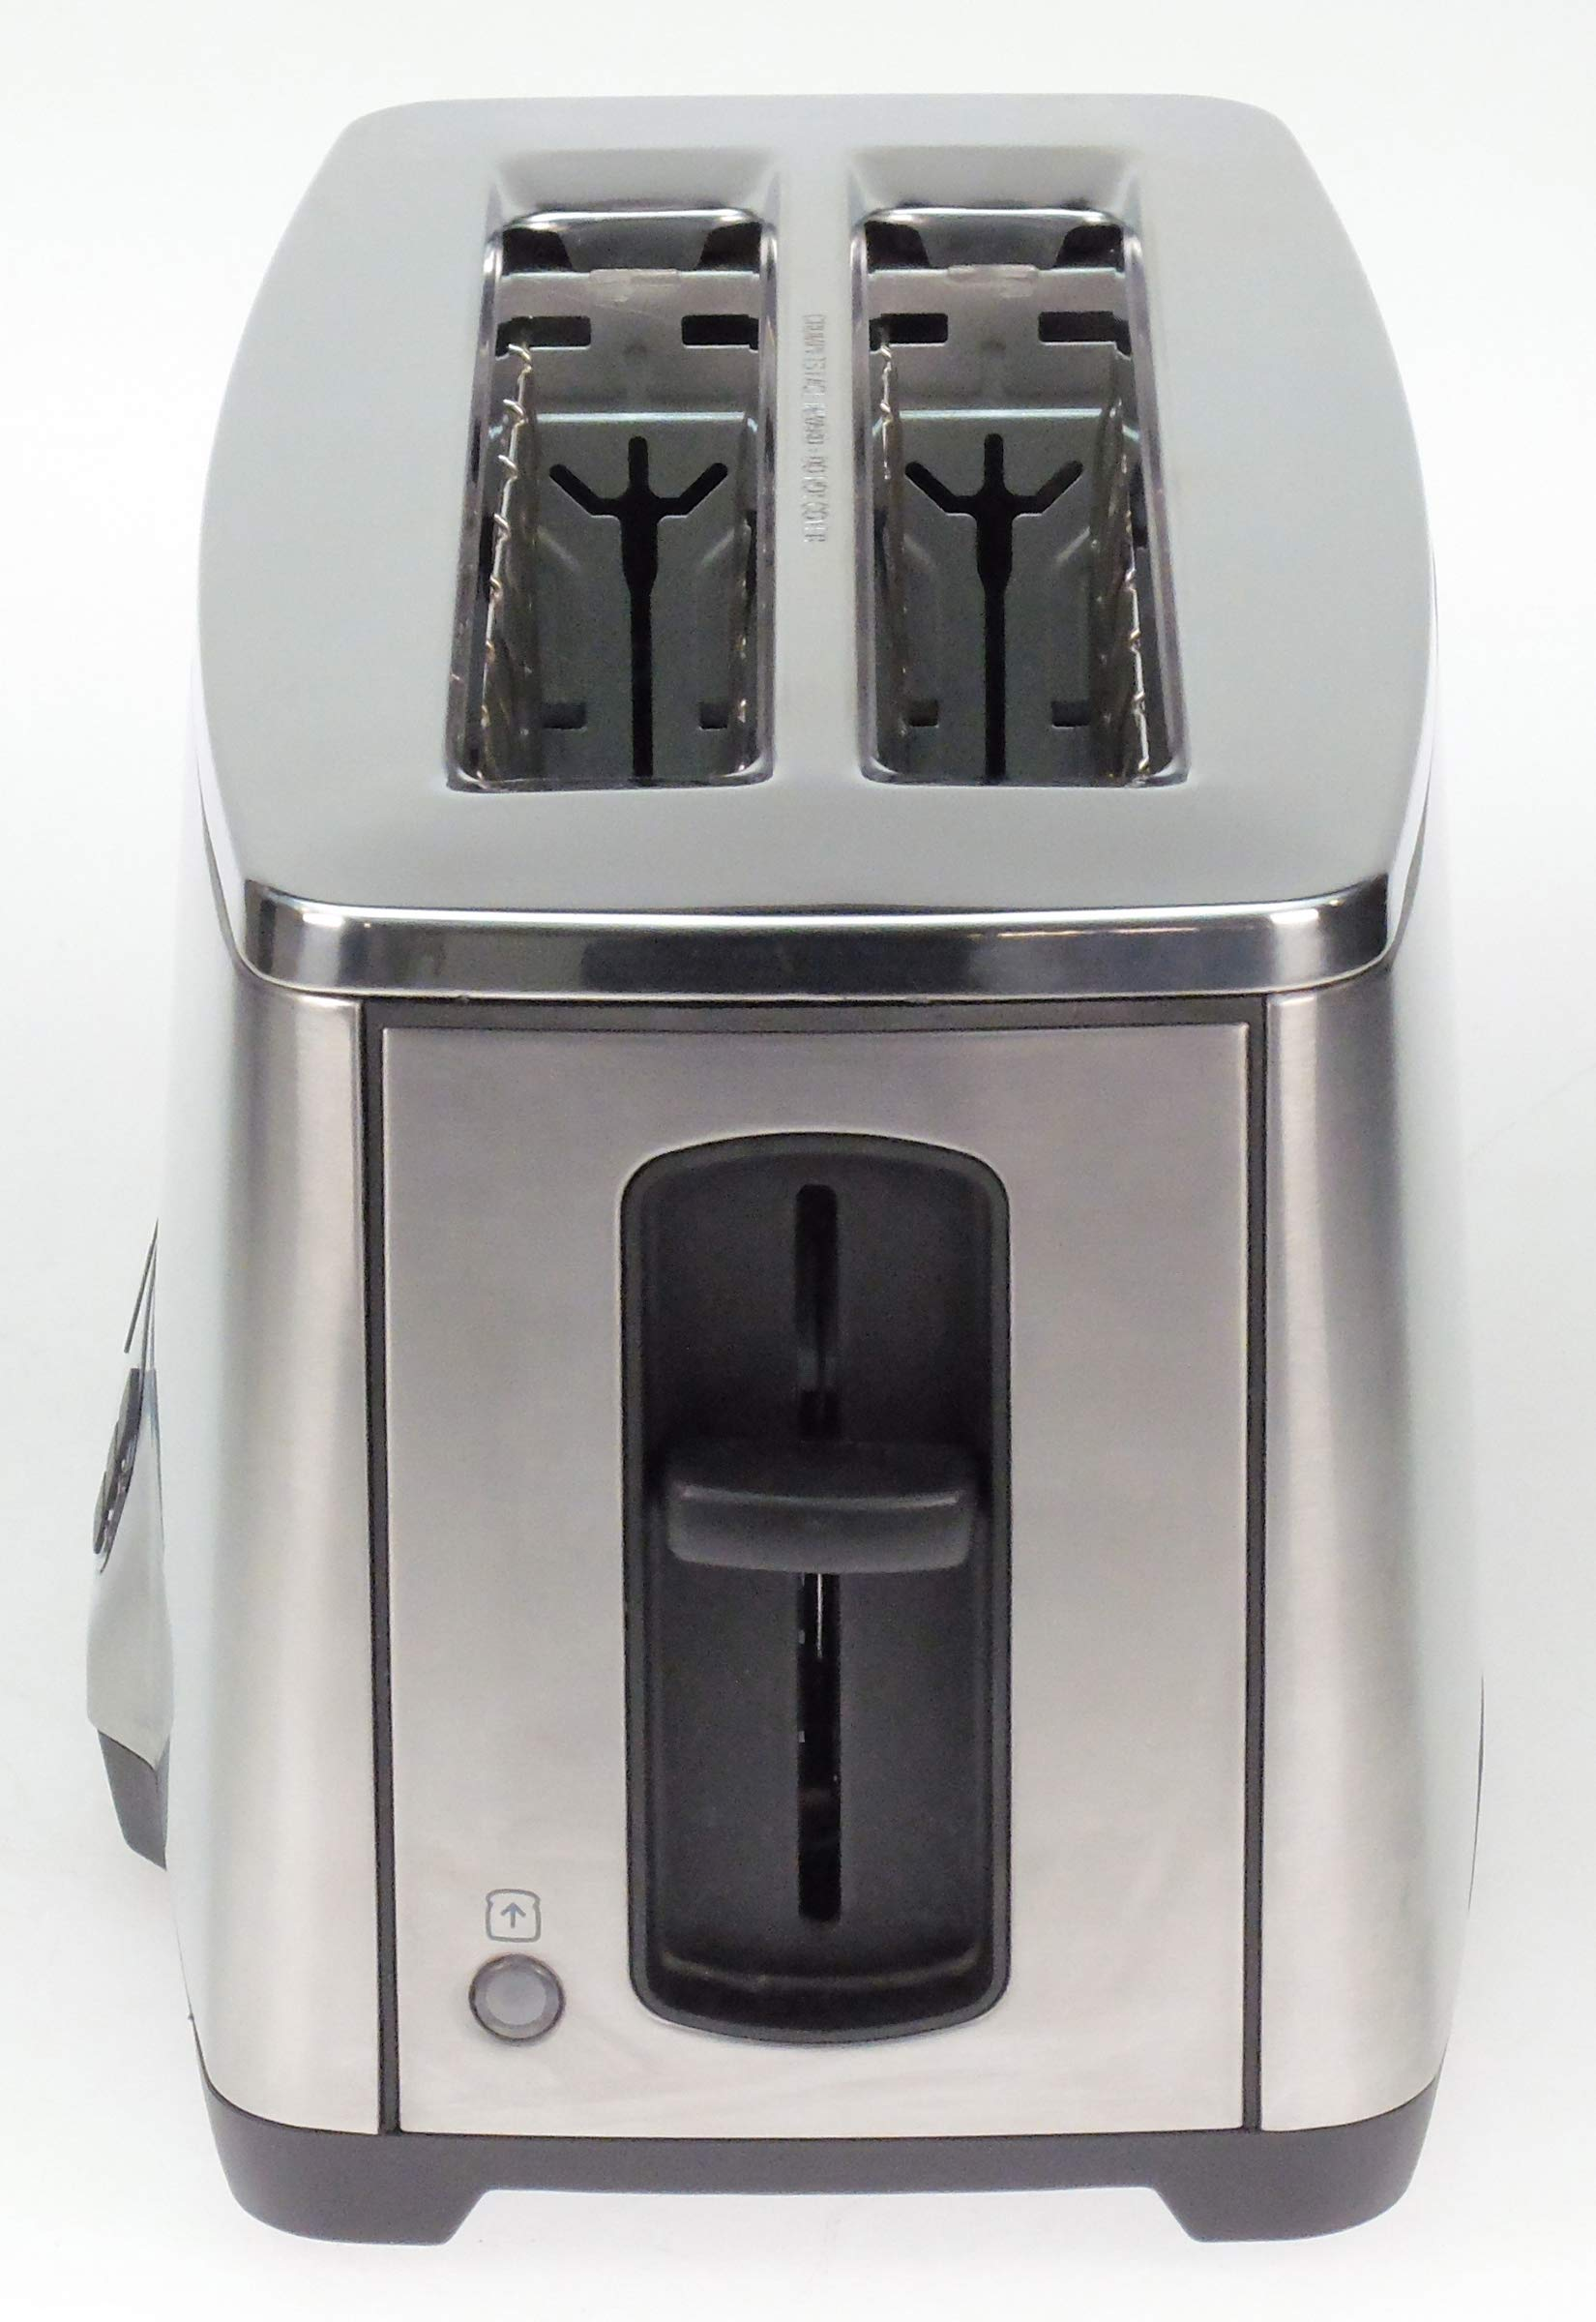 Caso Design INOX.4 Four-Slice Toaster with Wire Warming Basket Attachment, 4, Stainless by Caso Design (Image #6)